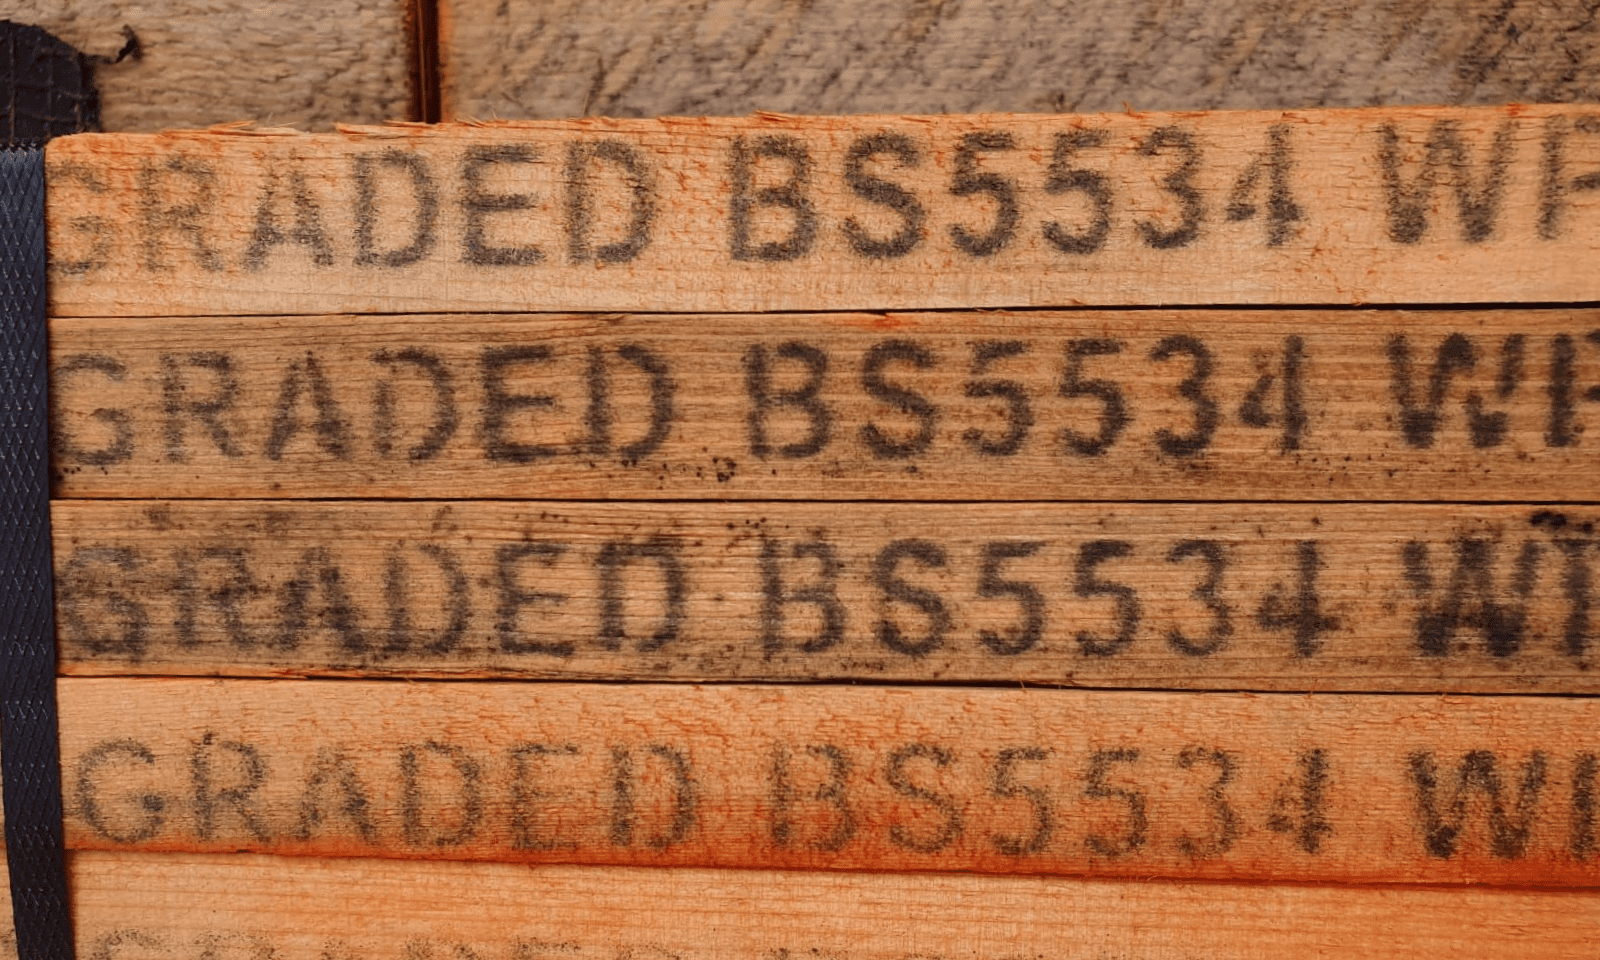 Raising your roofing standards: BS5534 for pitched roofs